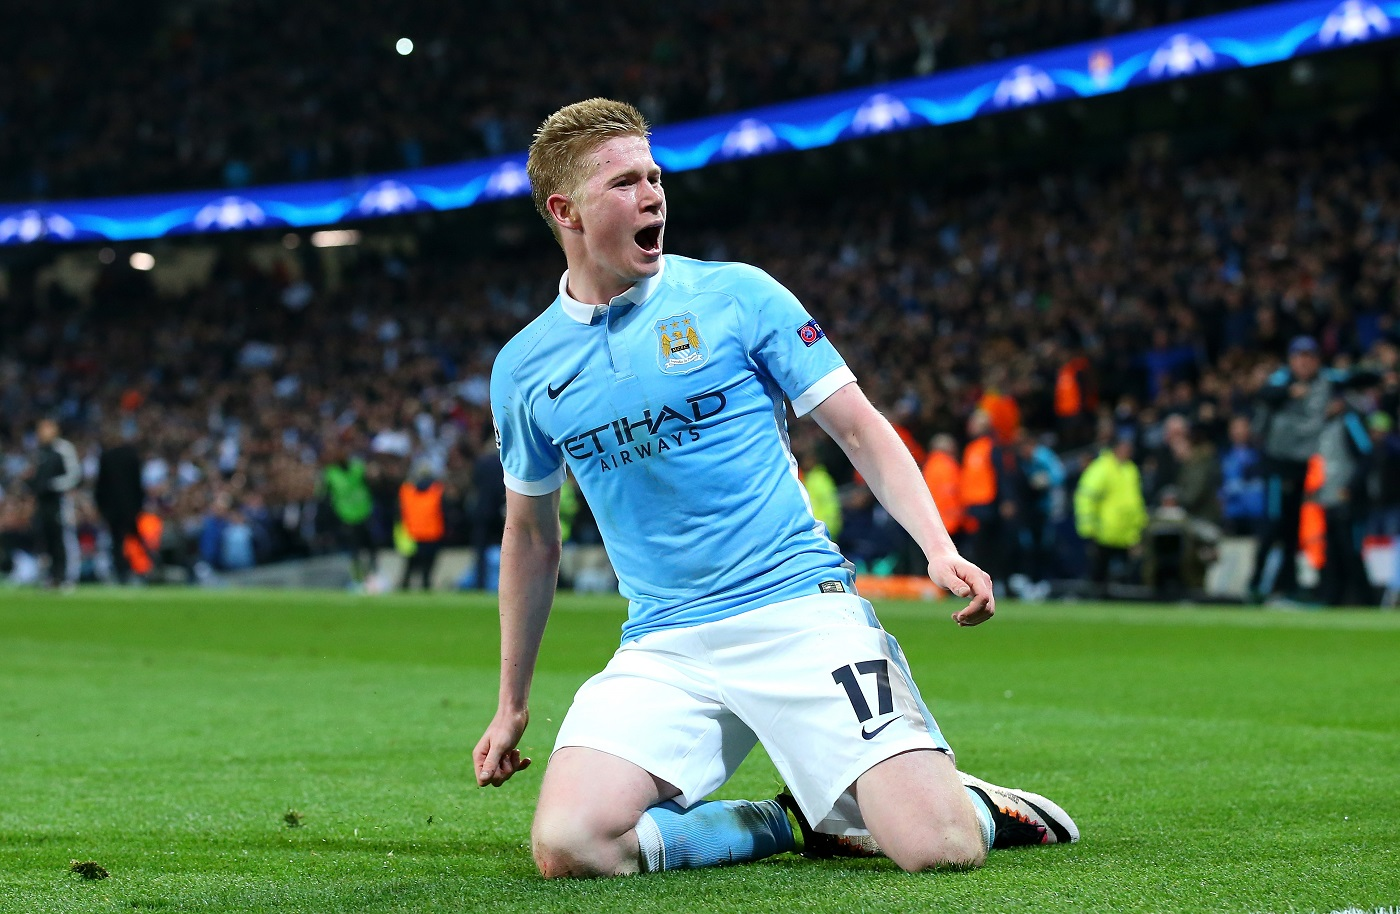 Kevin de Bruyne of Manchester City celebrates as he scores their first goal during a UEFA Champions League match